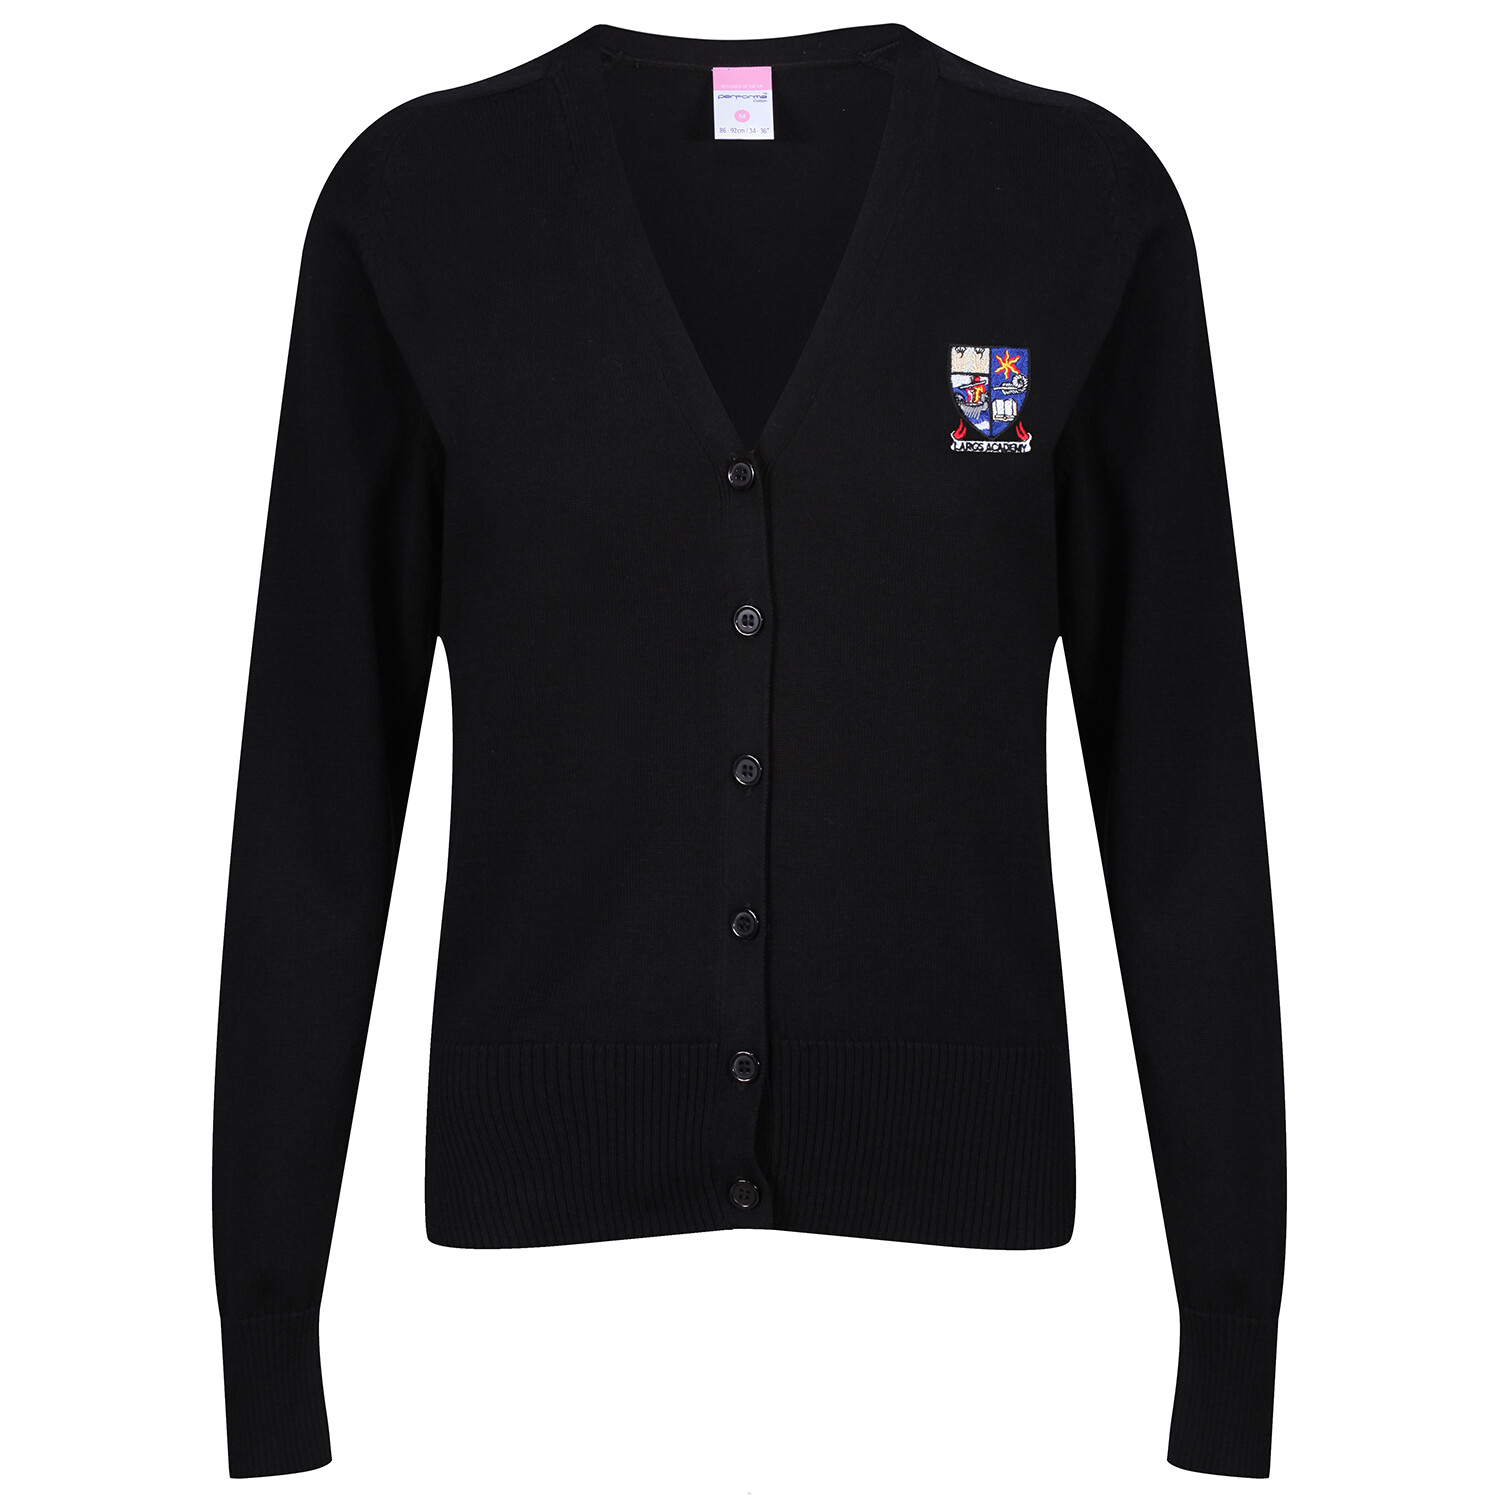 Largs Academy Girls Knitted Cardigan